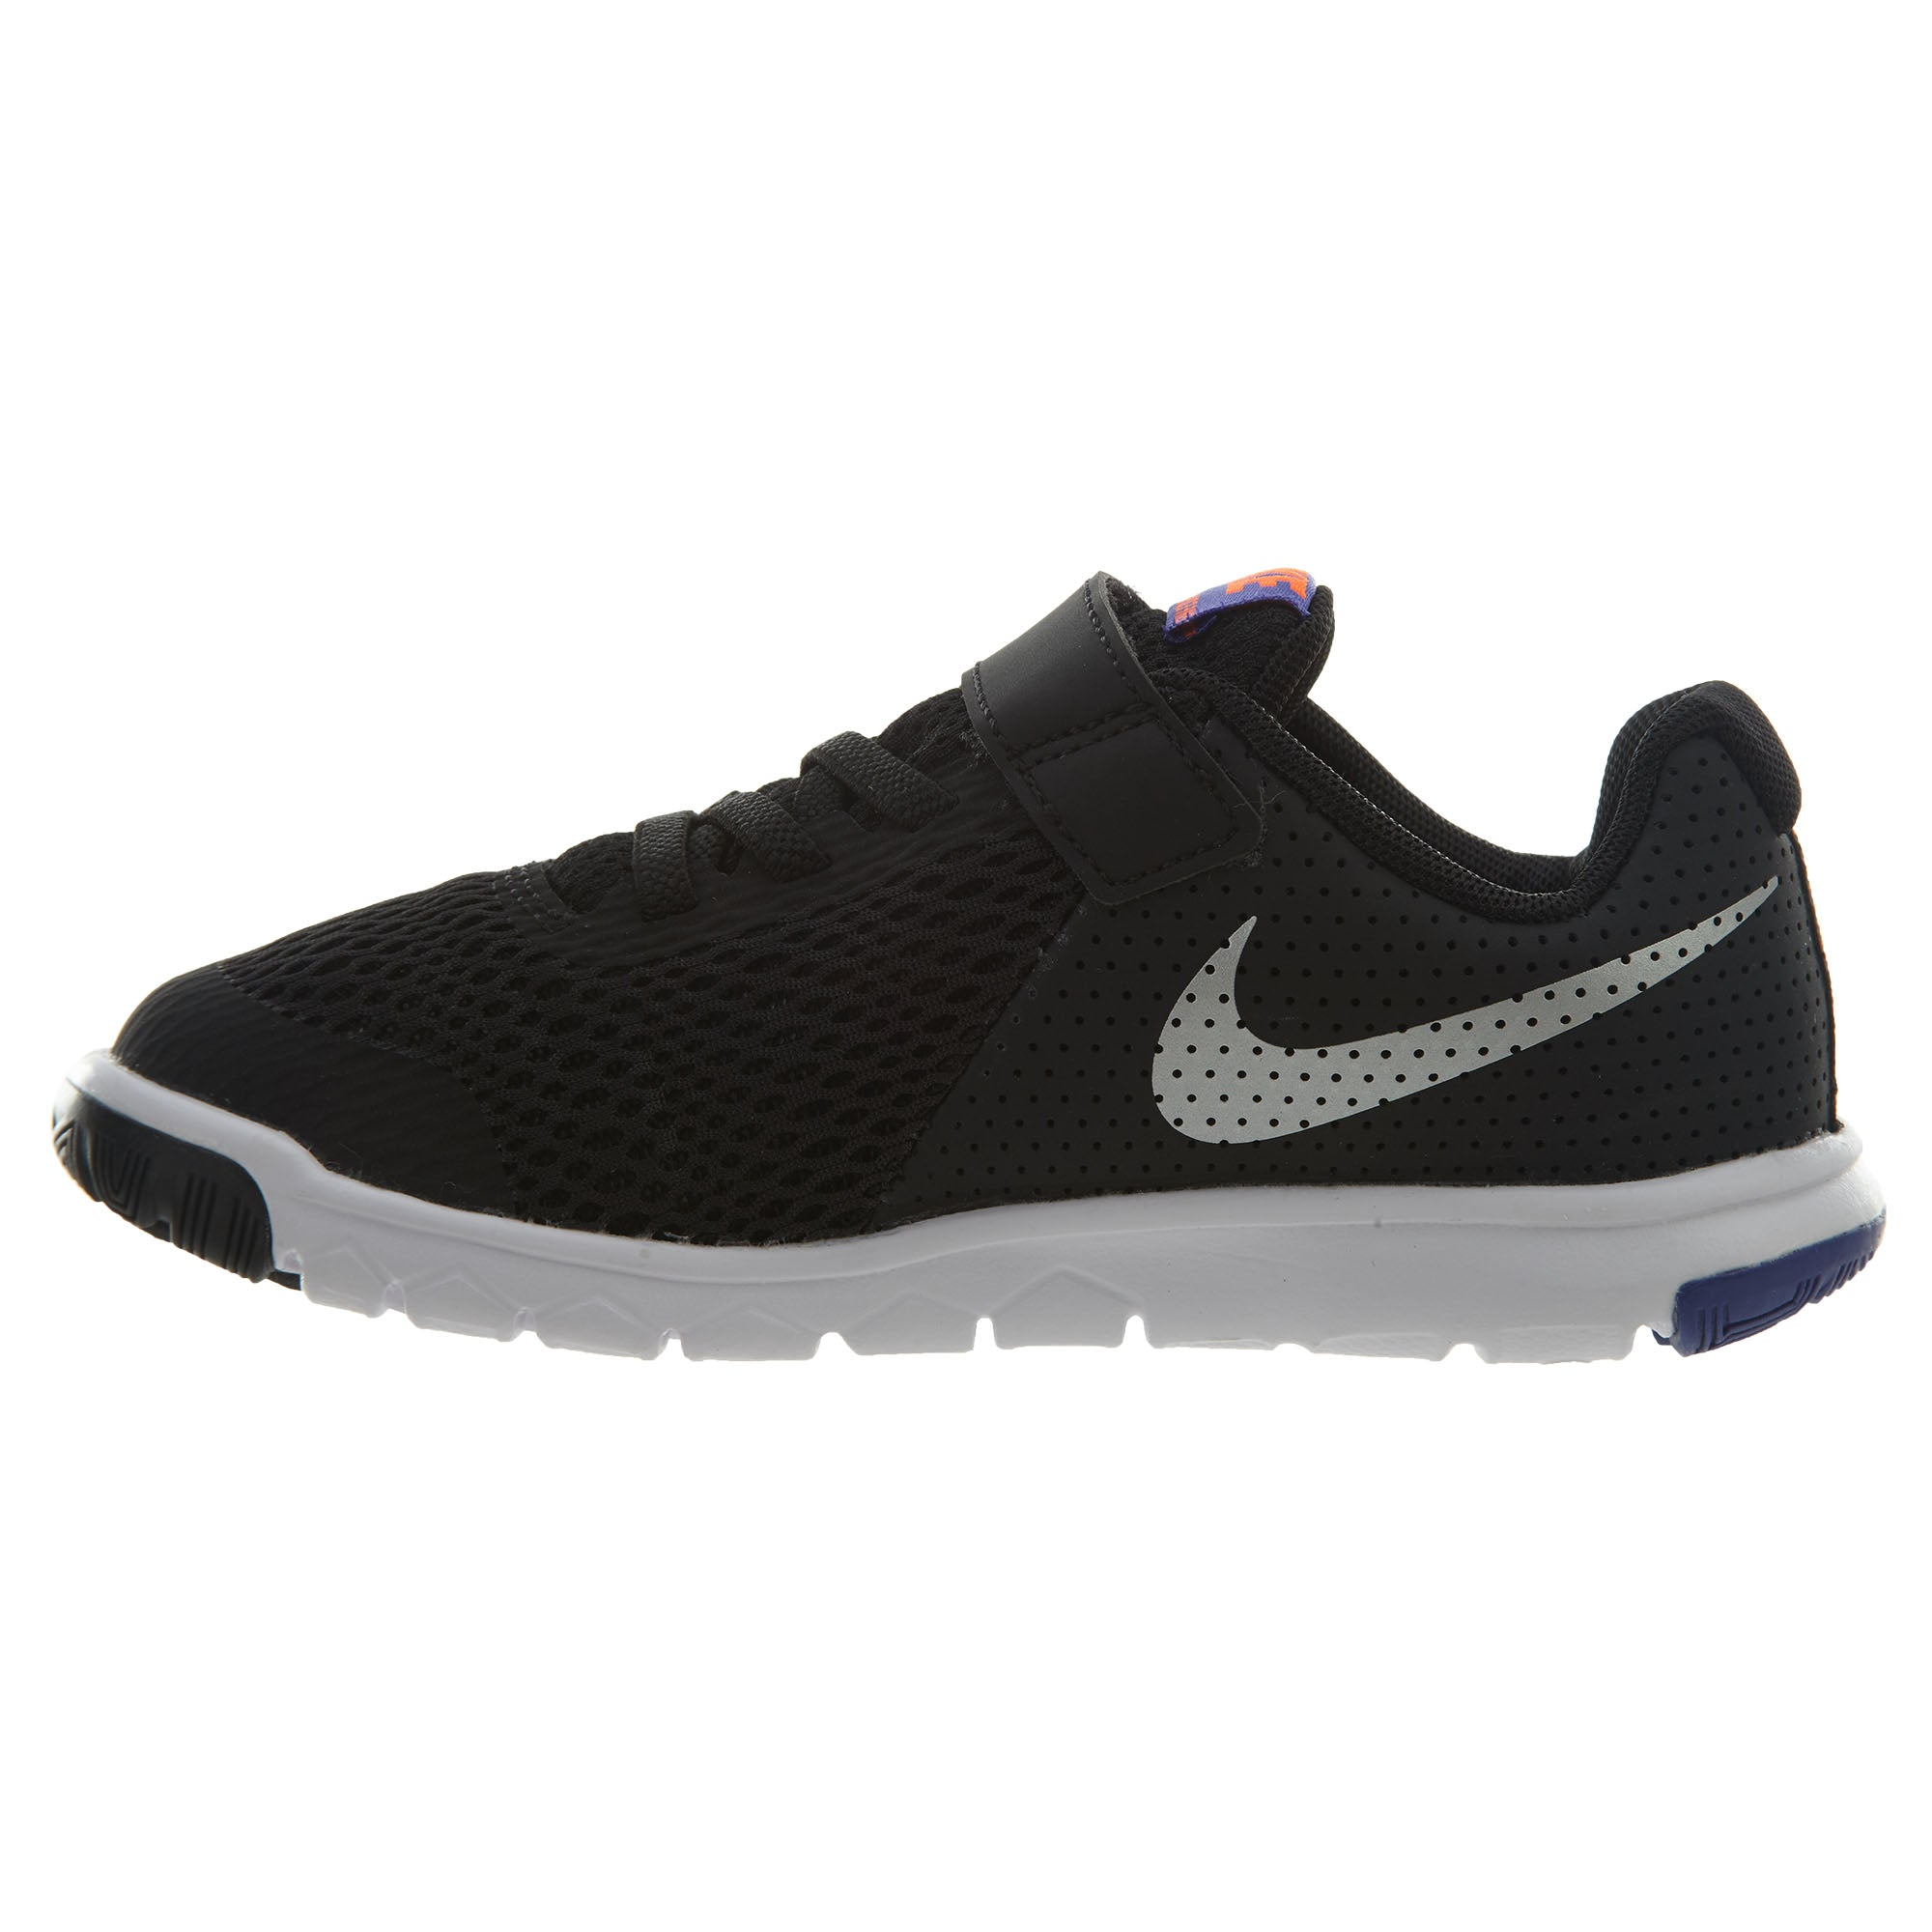 4ae48d6b0f32a Nike Flex Experience 5 Little Kids Style   844996. NIKE   Athletic Shoes    Sneakers